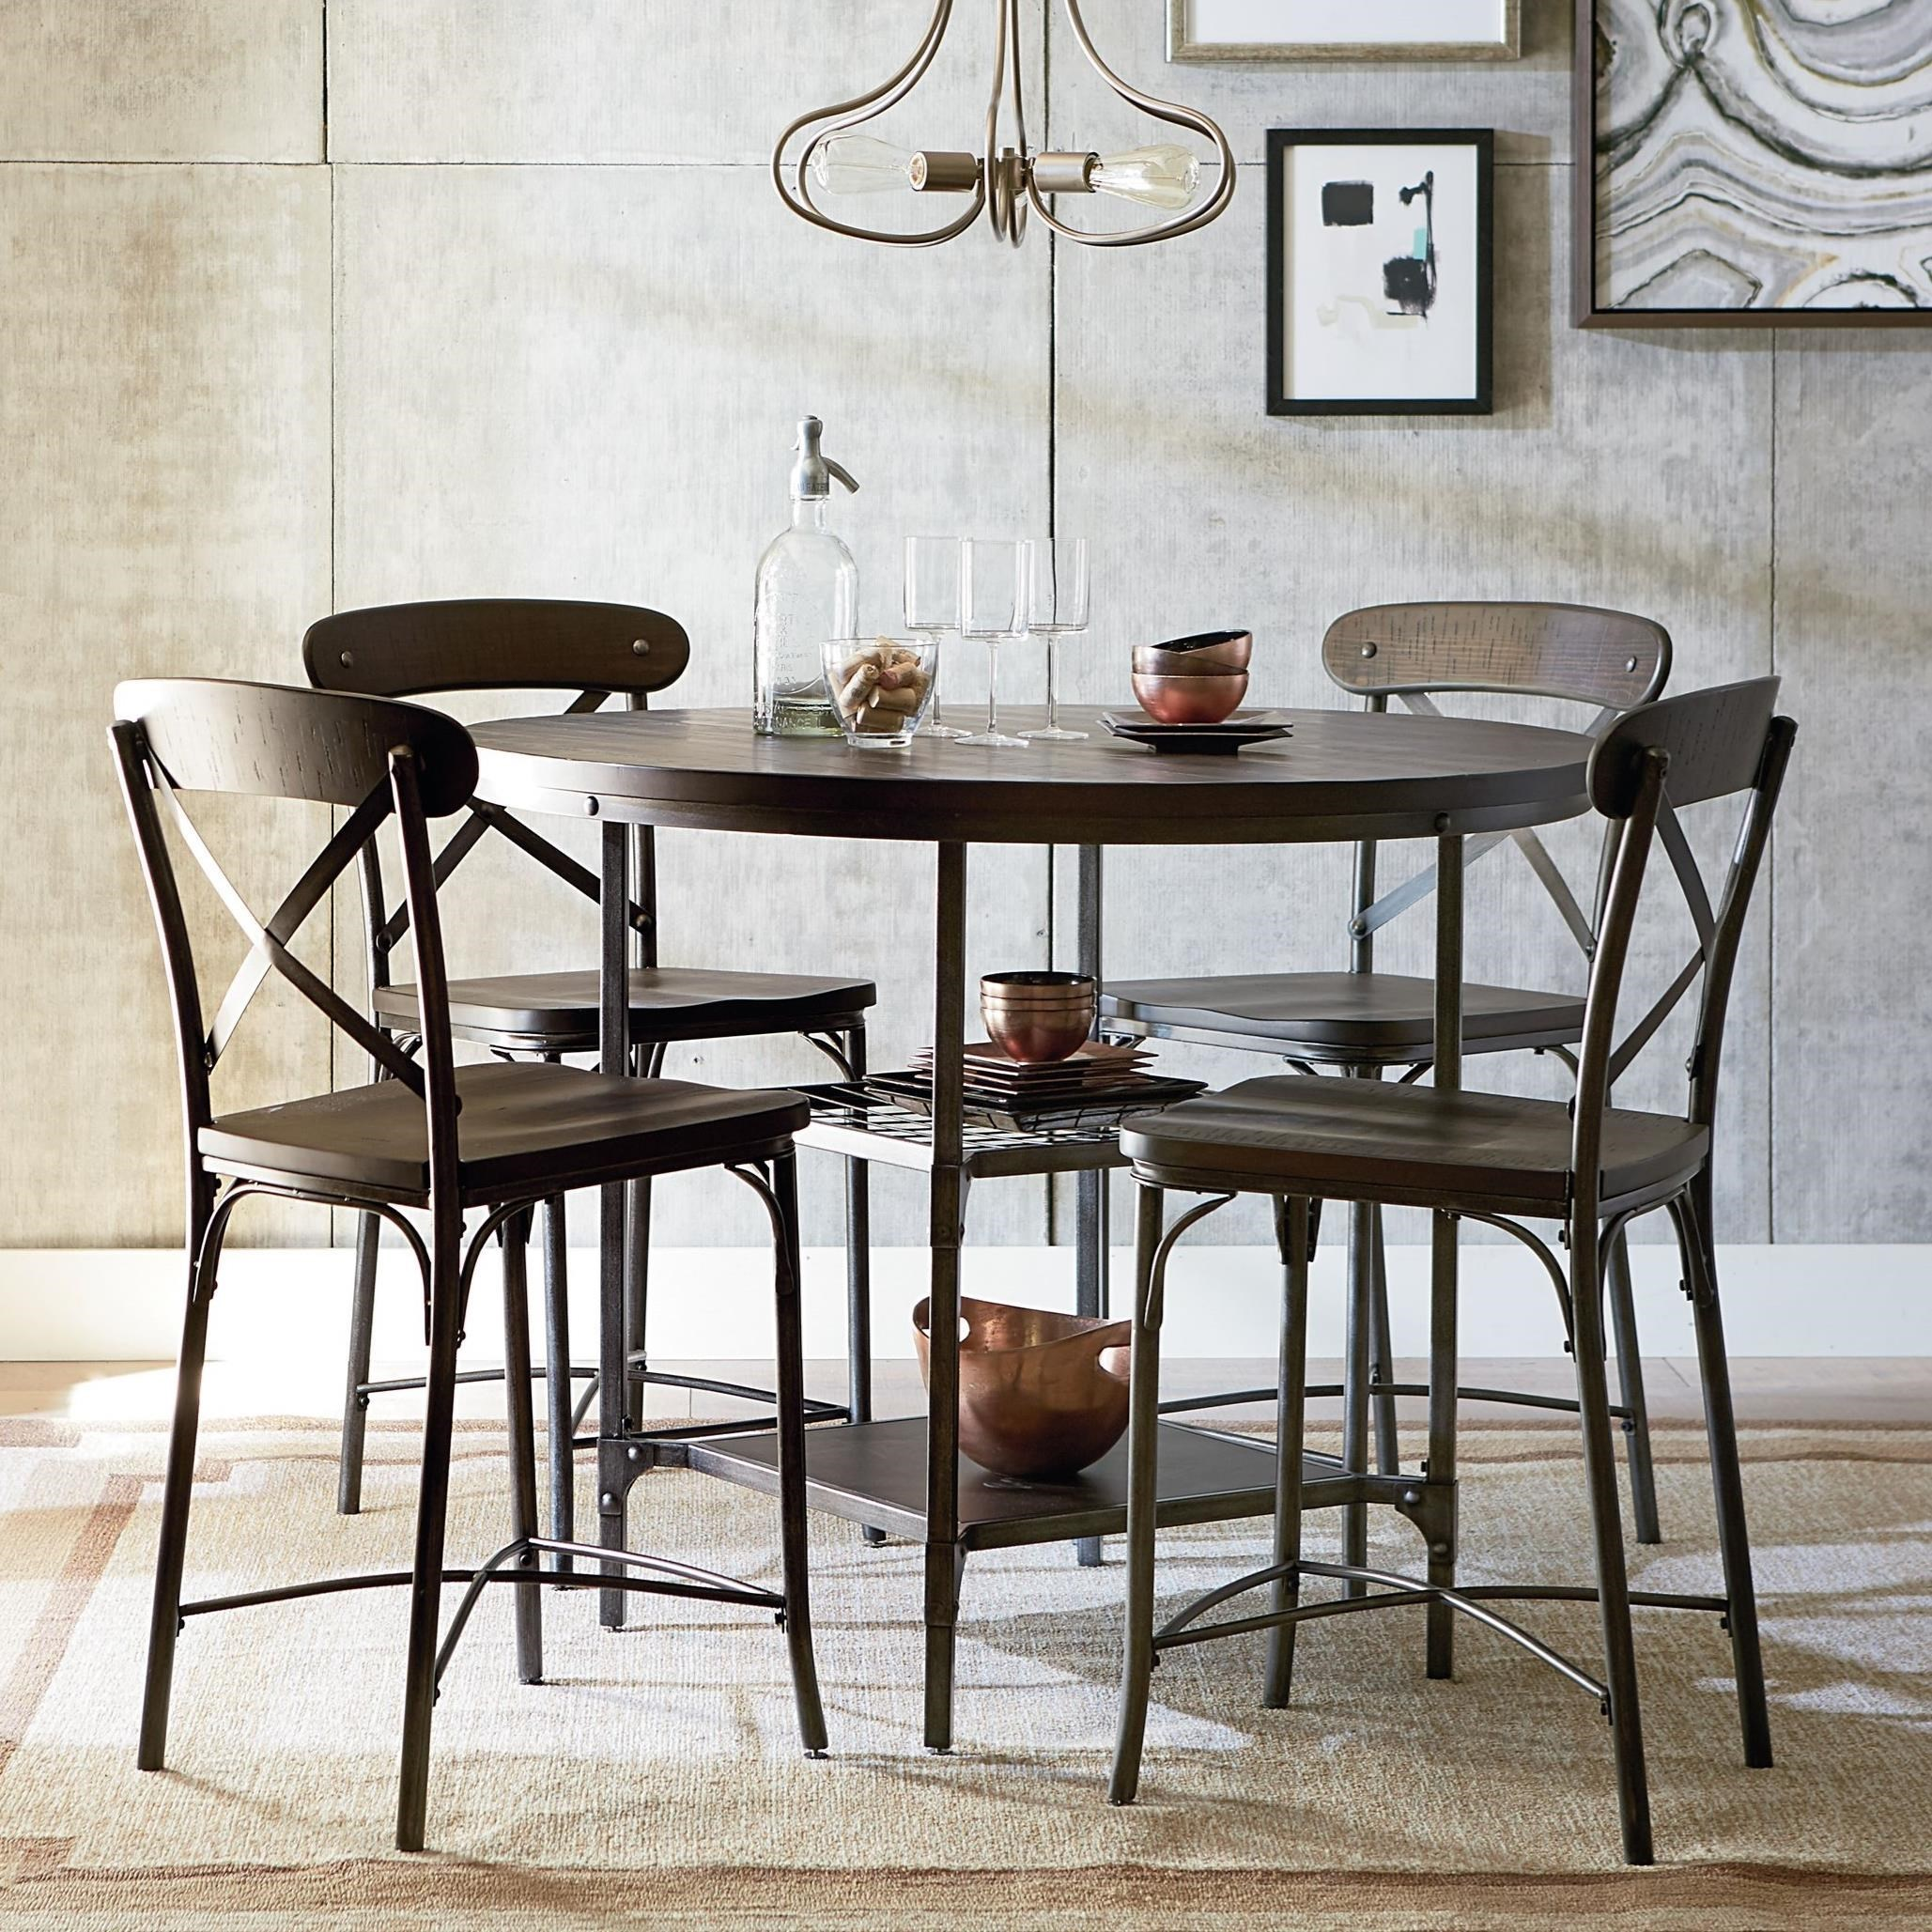 Attrayant Standard Furniture Montvale Rustic Bar Height Dining Set